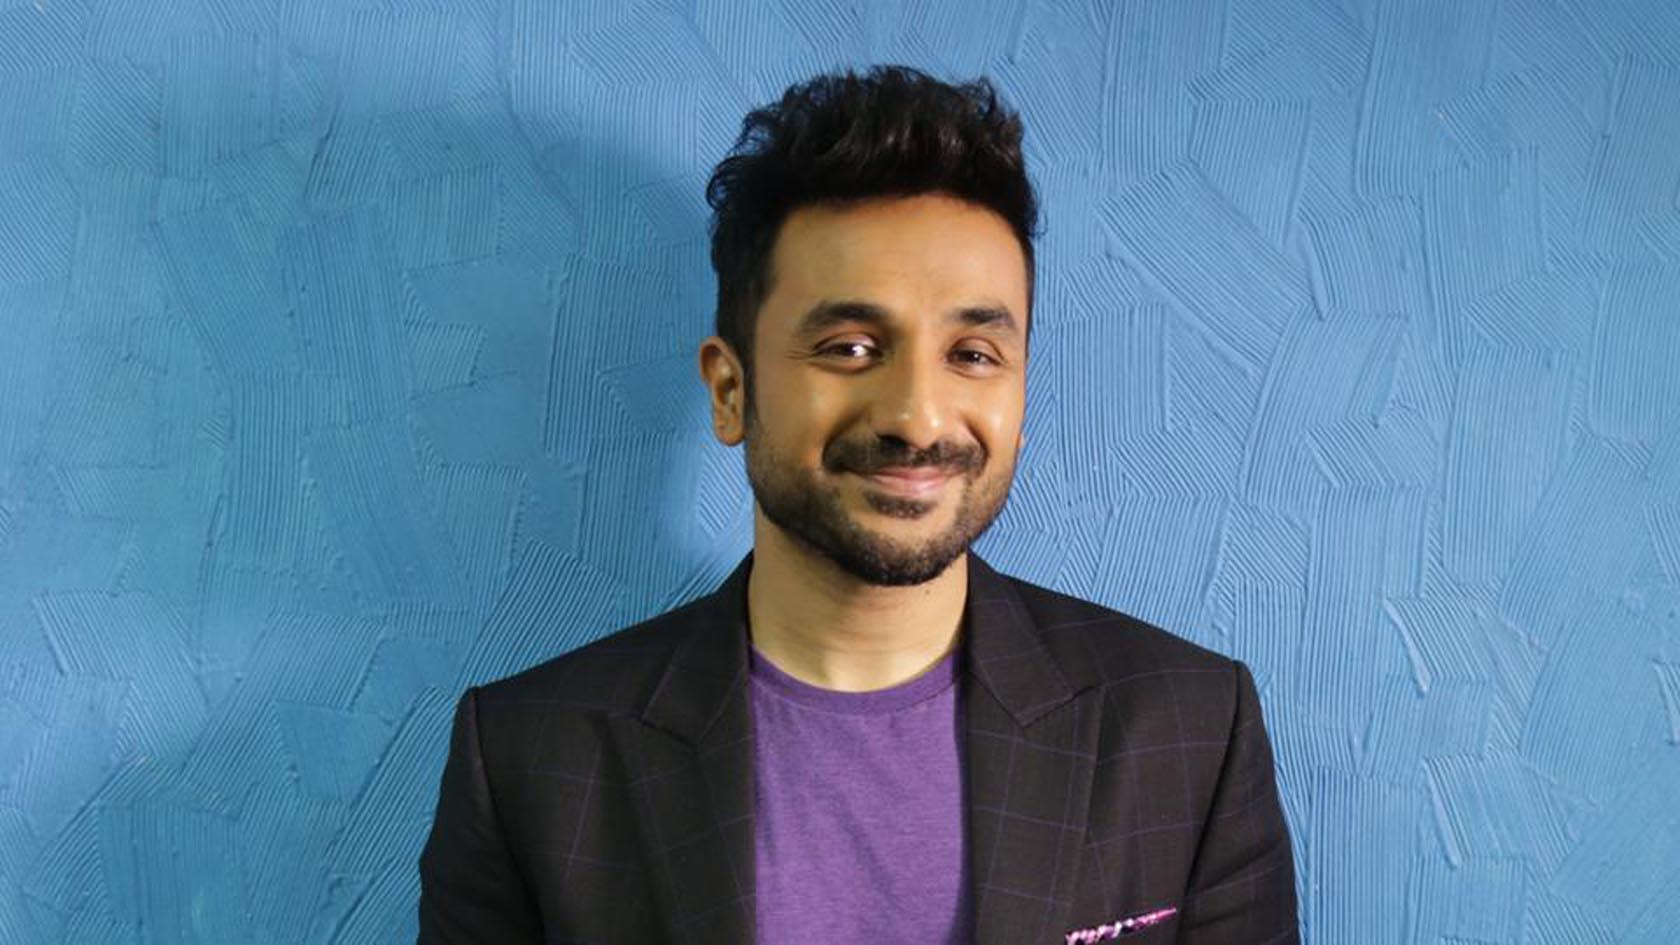 'Colour is secondary to talent': Vir Das